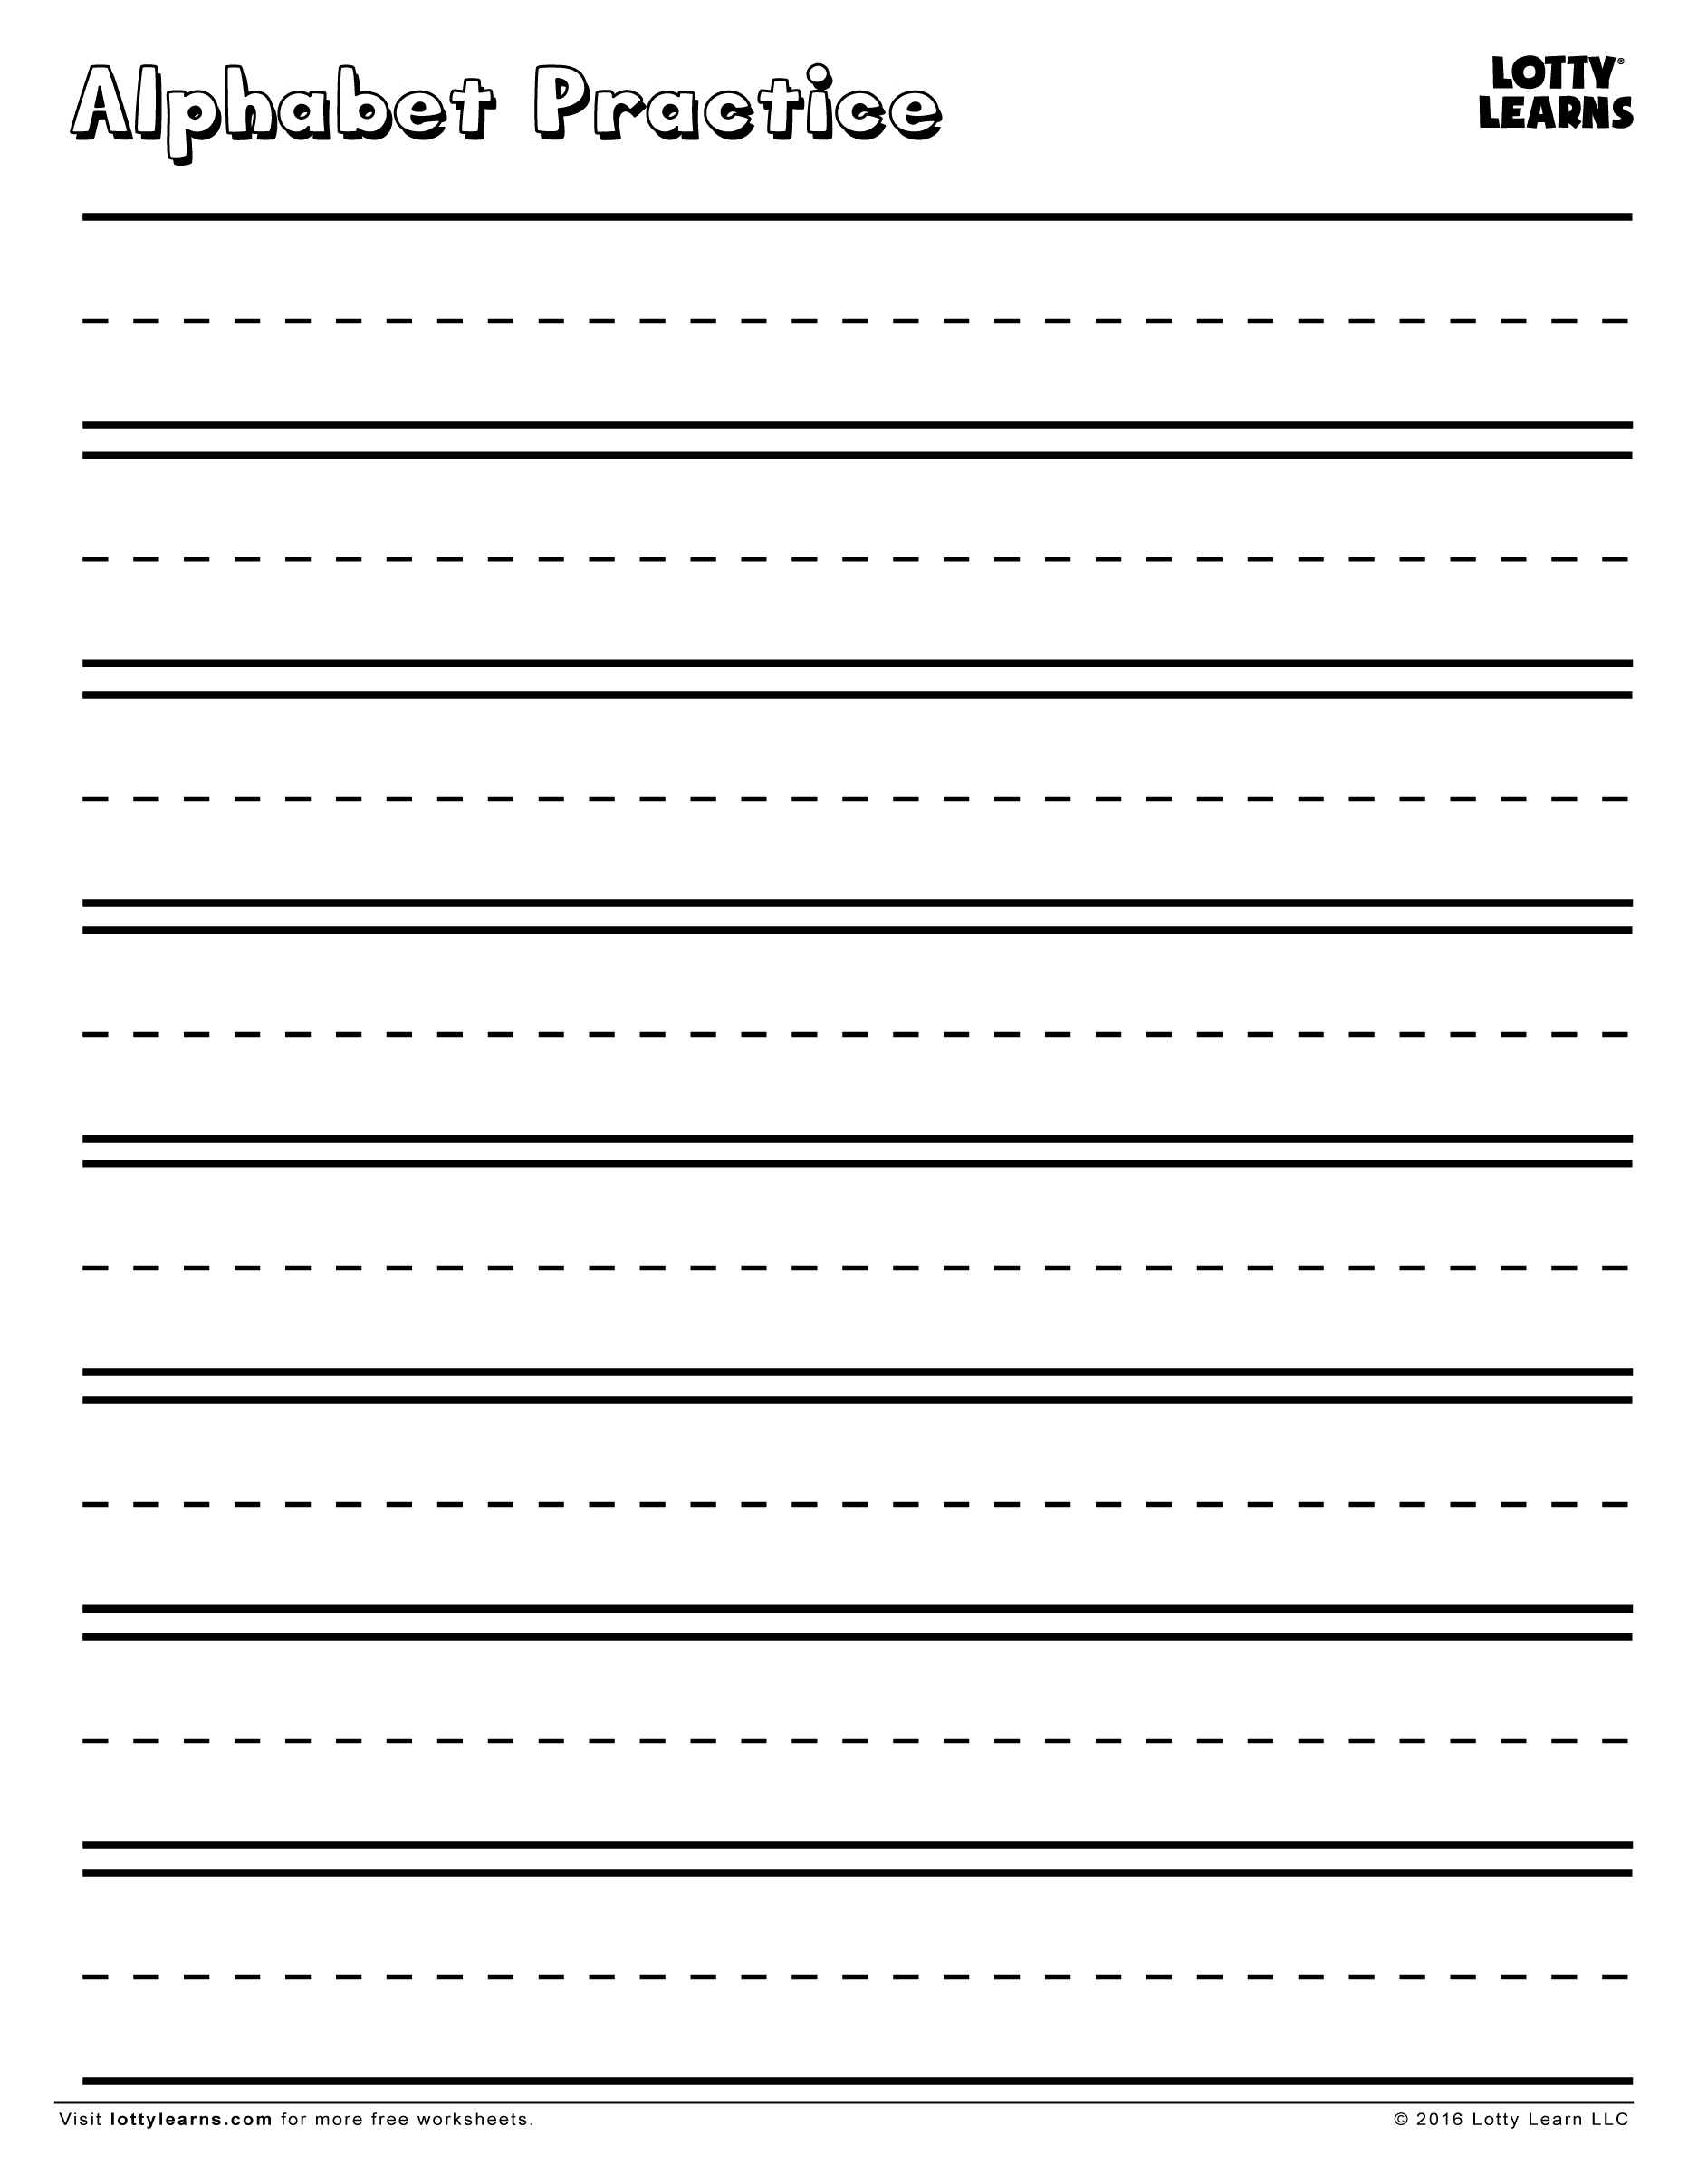 Practice Makes Perfect! Blank Alphabet Practice Sheet   Lotty Learns - Blank Handwriting Worksheets Printable Free